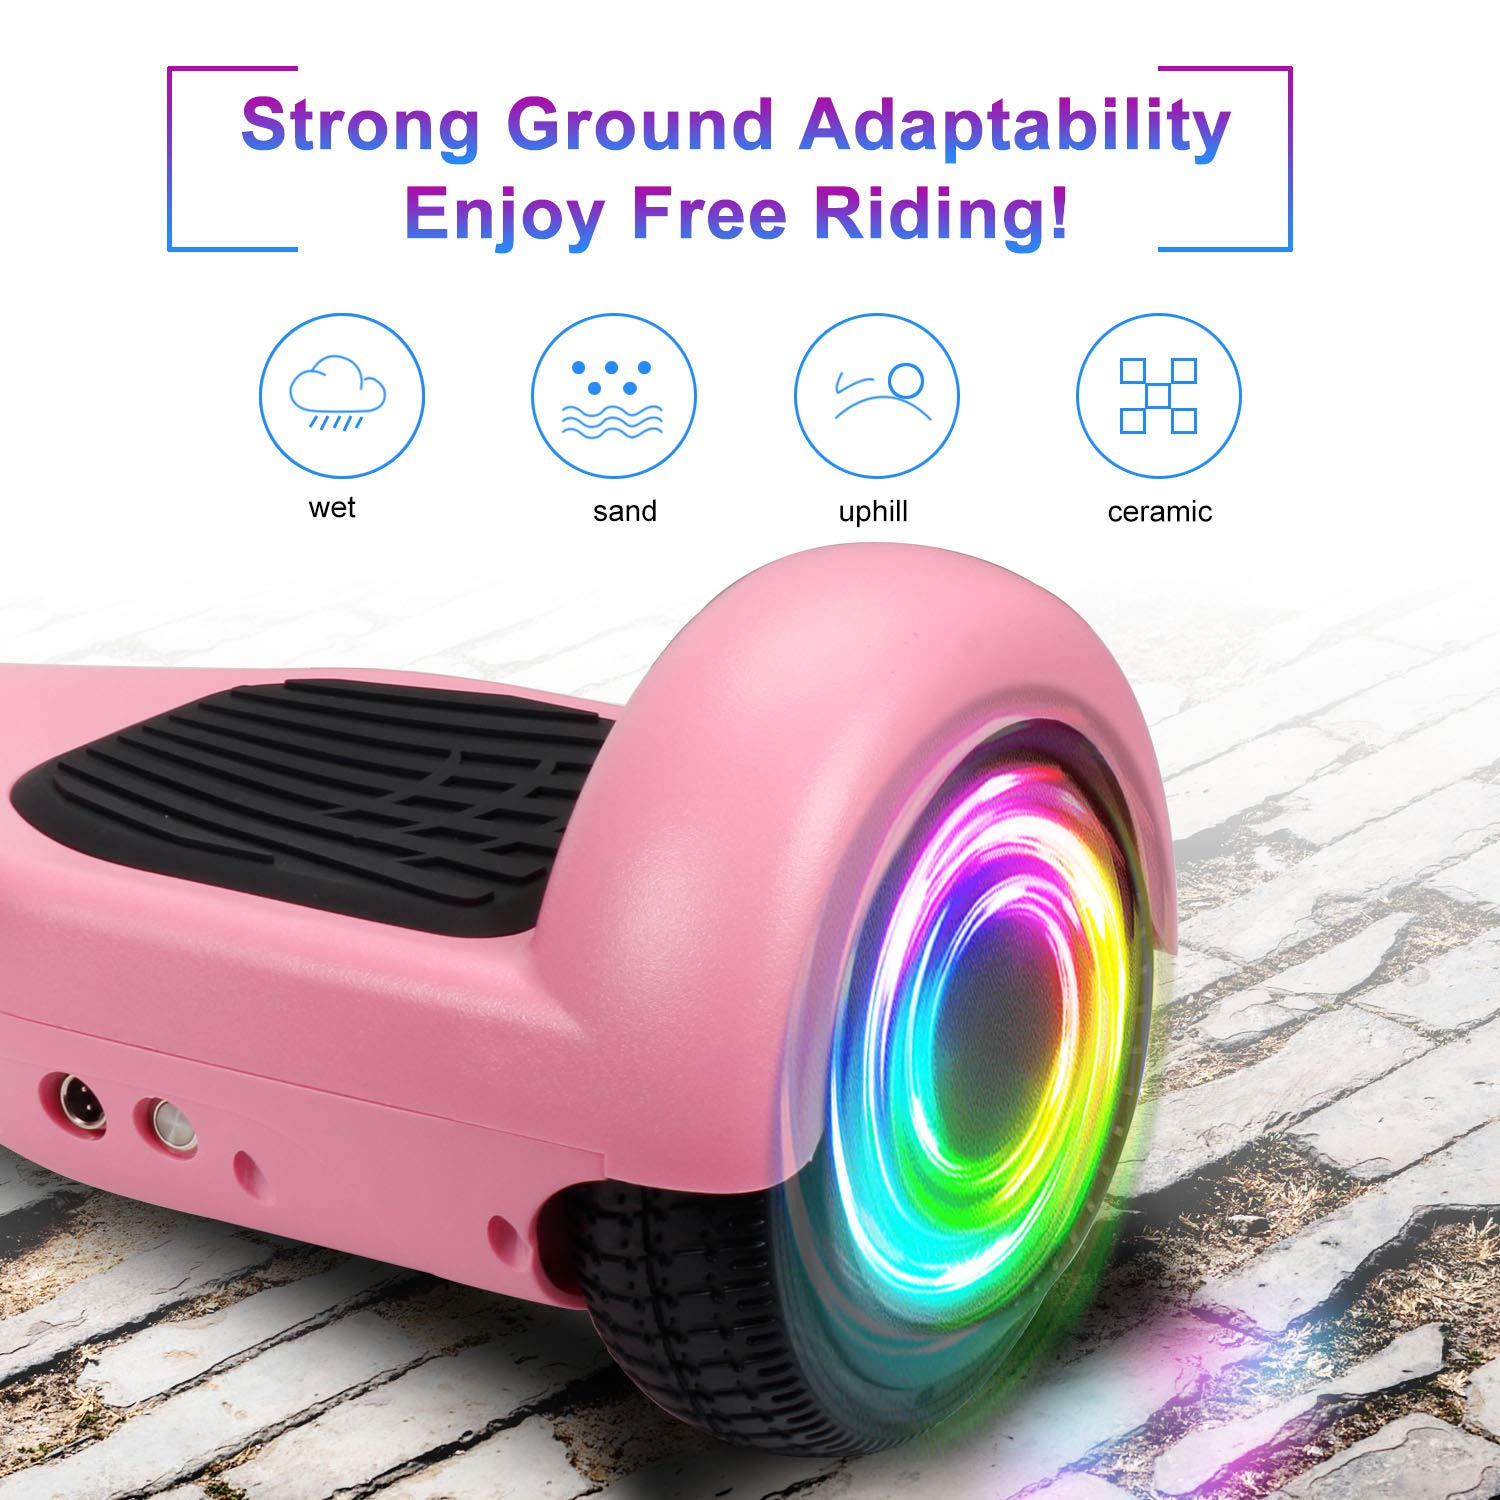 SISIGAD Hoverboard Self Balancing Scooter 6.5'' Two-Wheel Self Balancing Hoverboard with LED Lights Electric Scooter for Adult Kids Gift UL 2272 Certified - Pink by SISIGAD (Image #3)